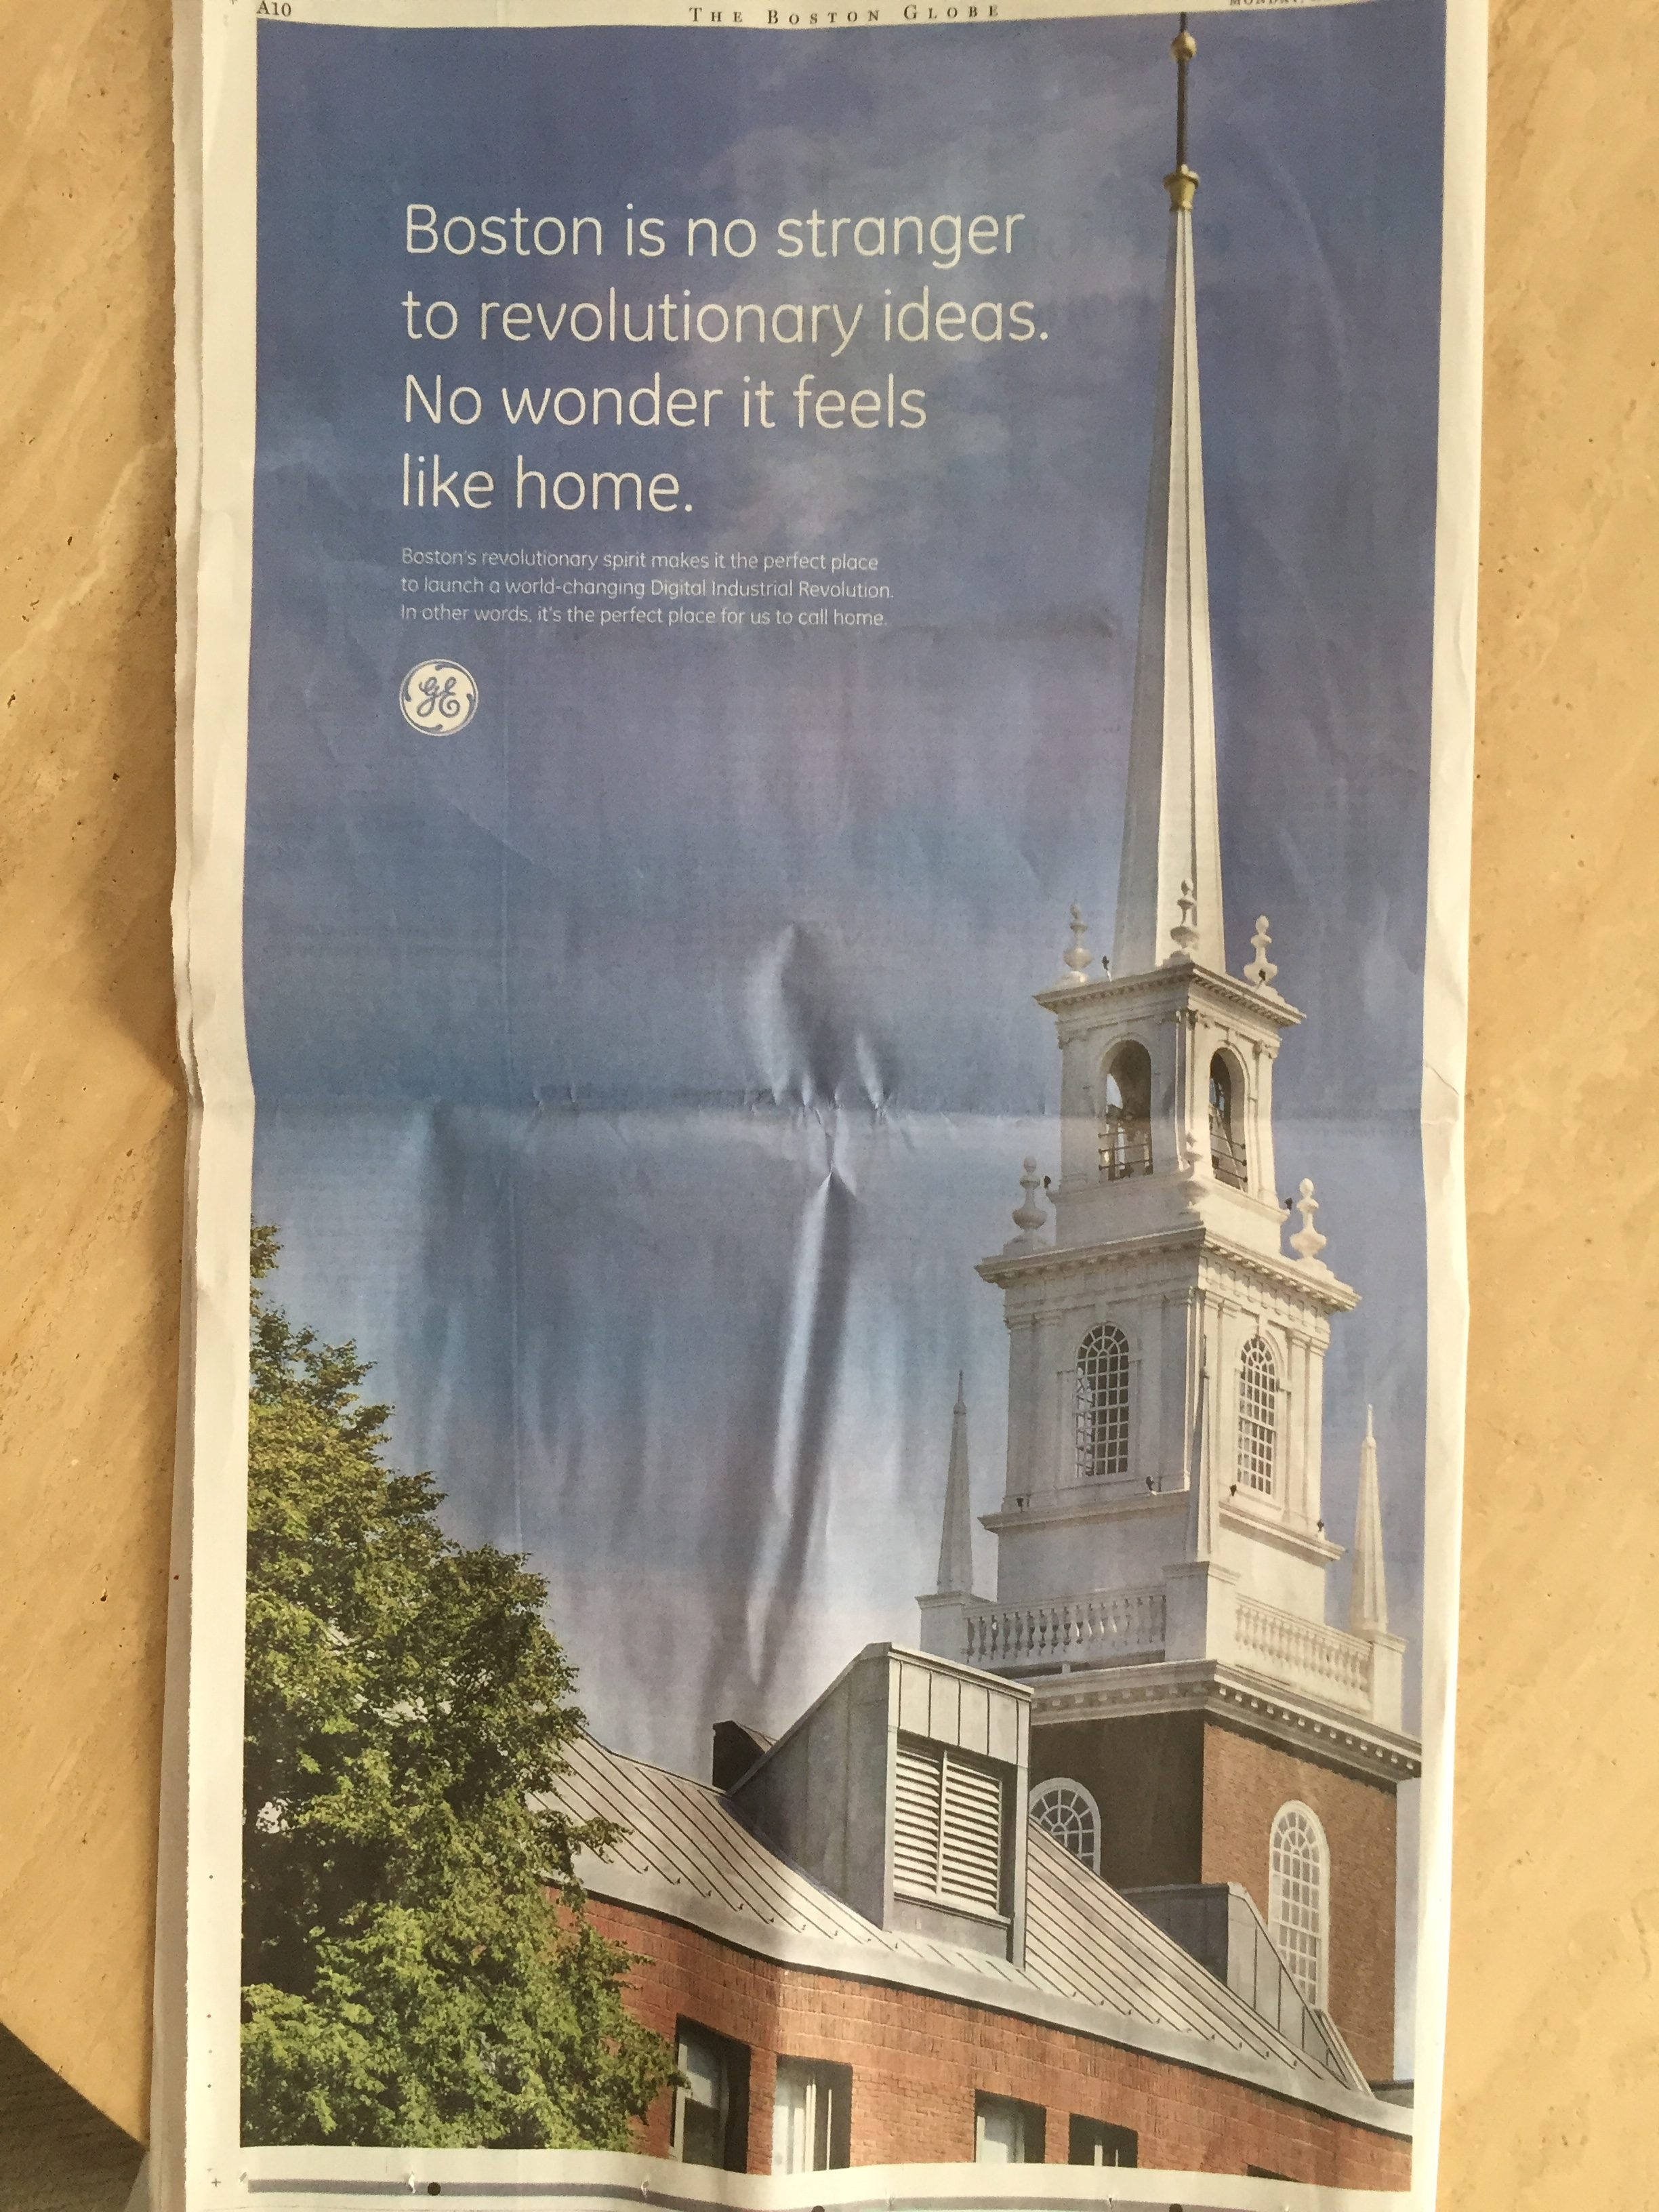 Whoops! Read how GE referenced the wrong church steeple in their Globe advertisement.